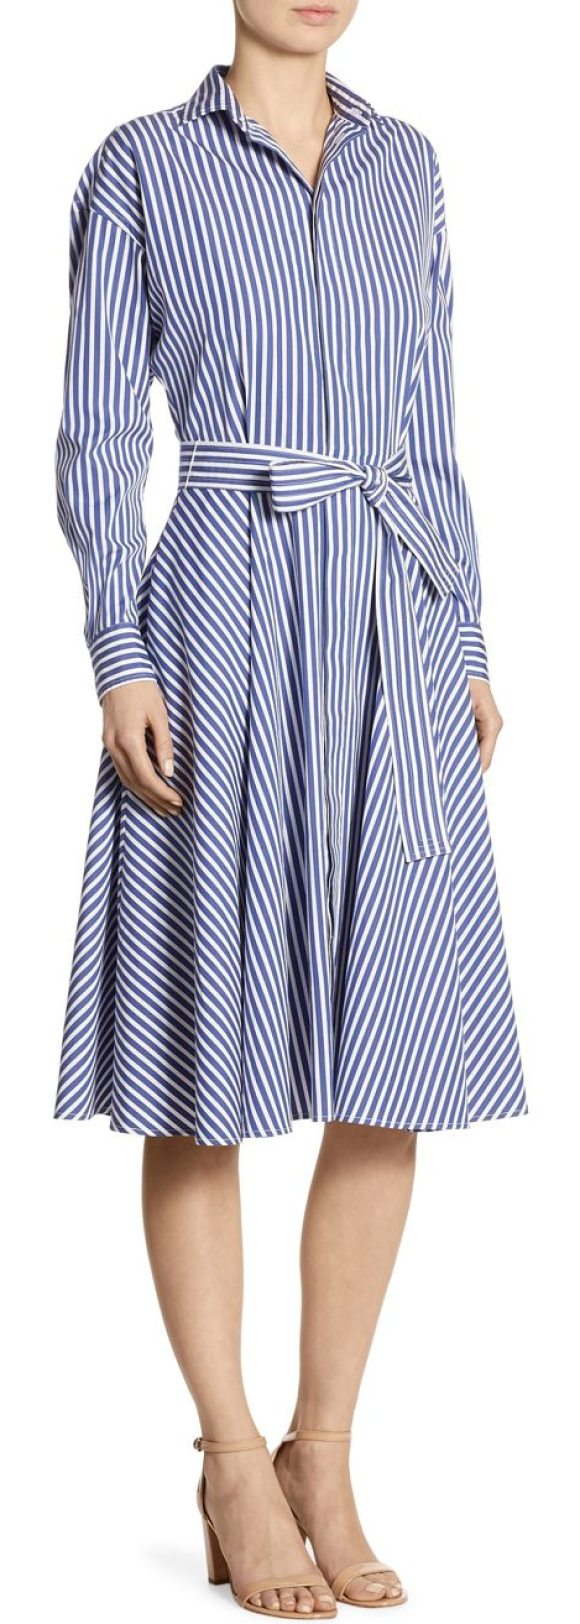 Polo Ralph Lauren Striped Cotton Poplin Shirtdress In Blue Shopstasy